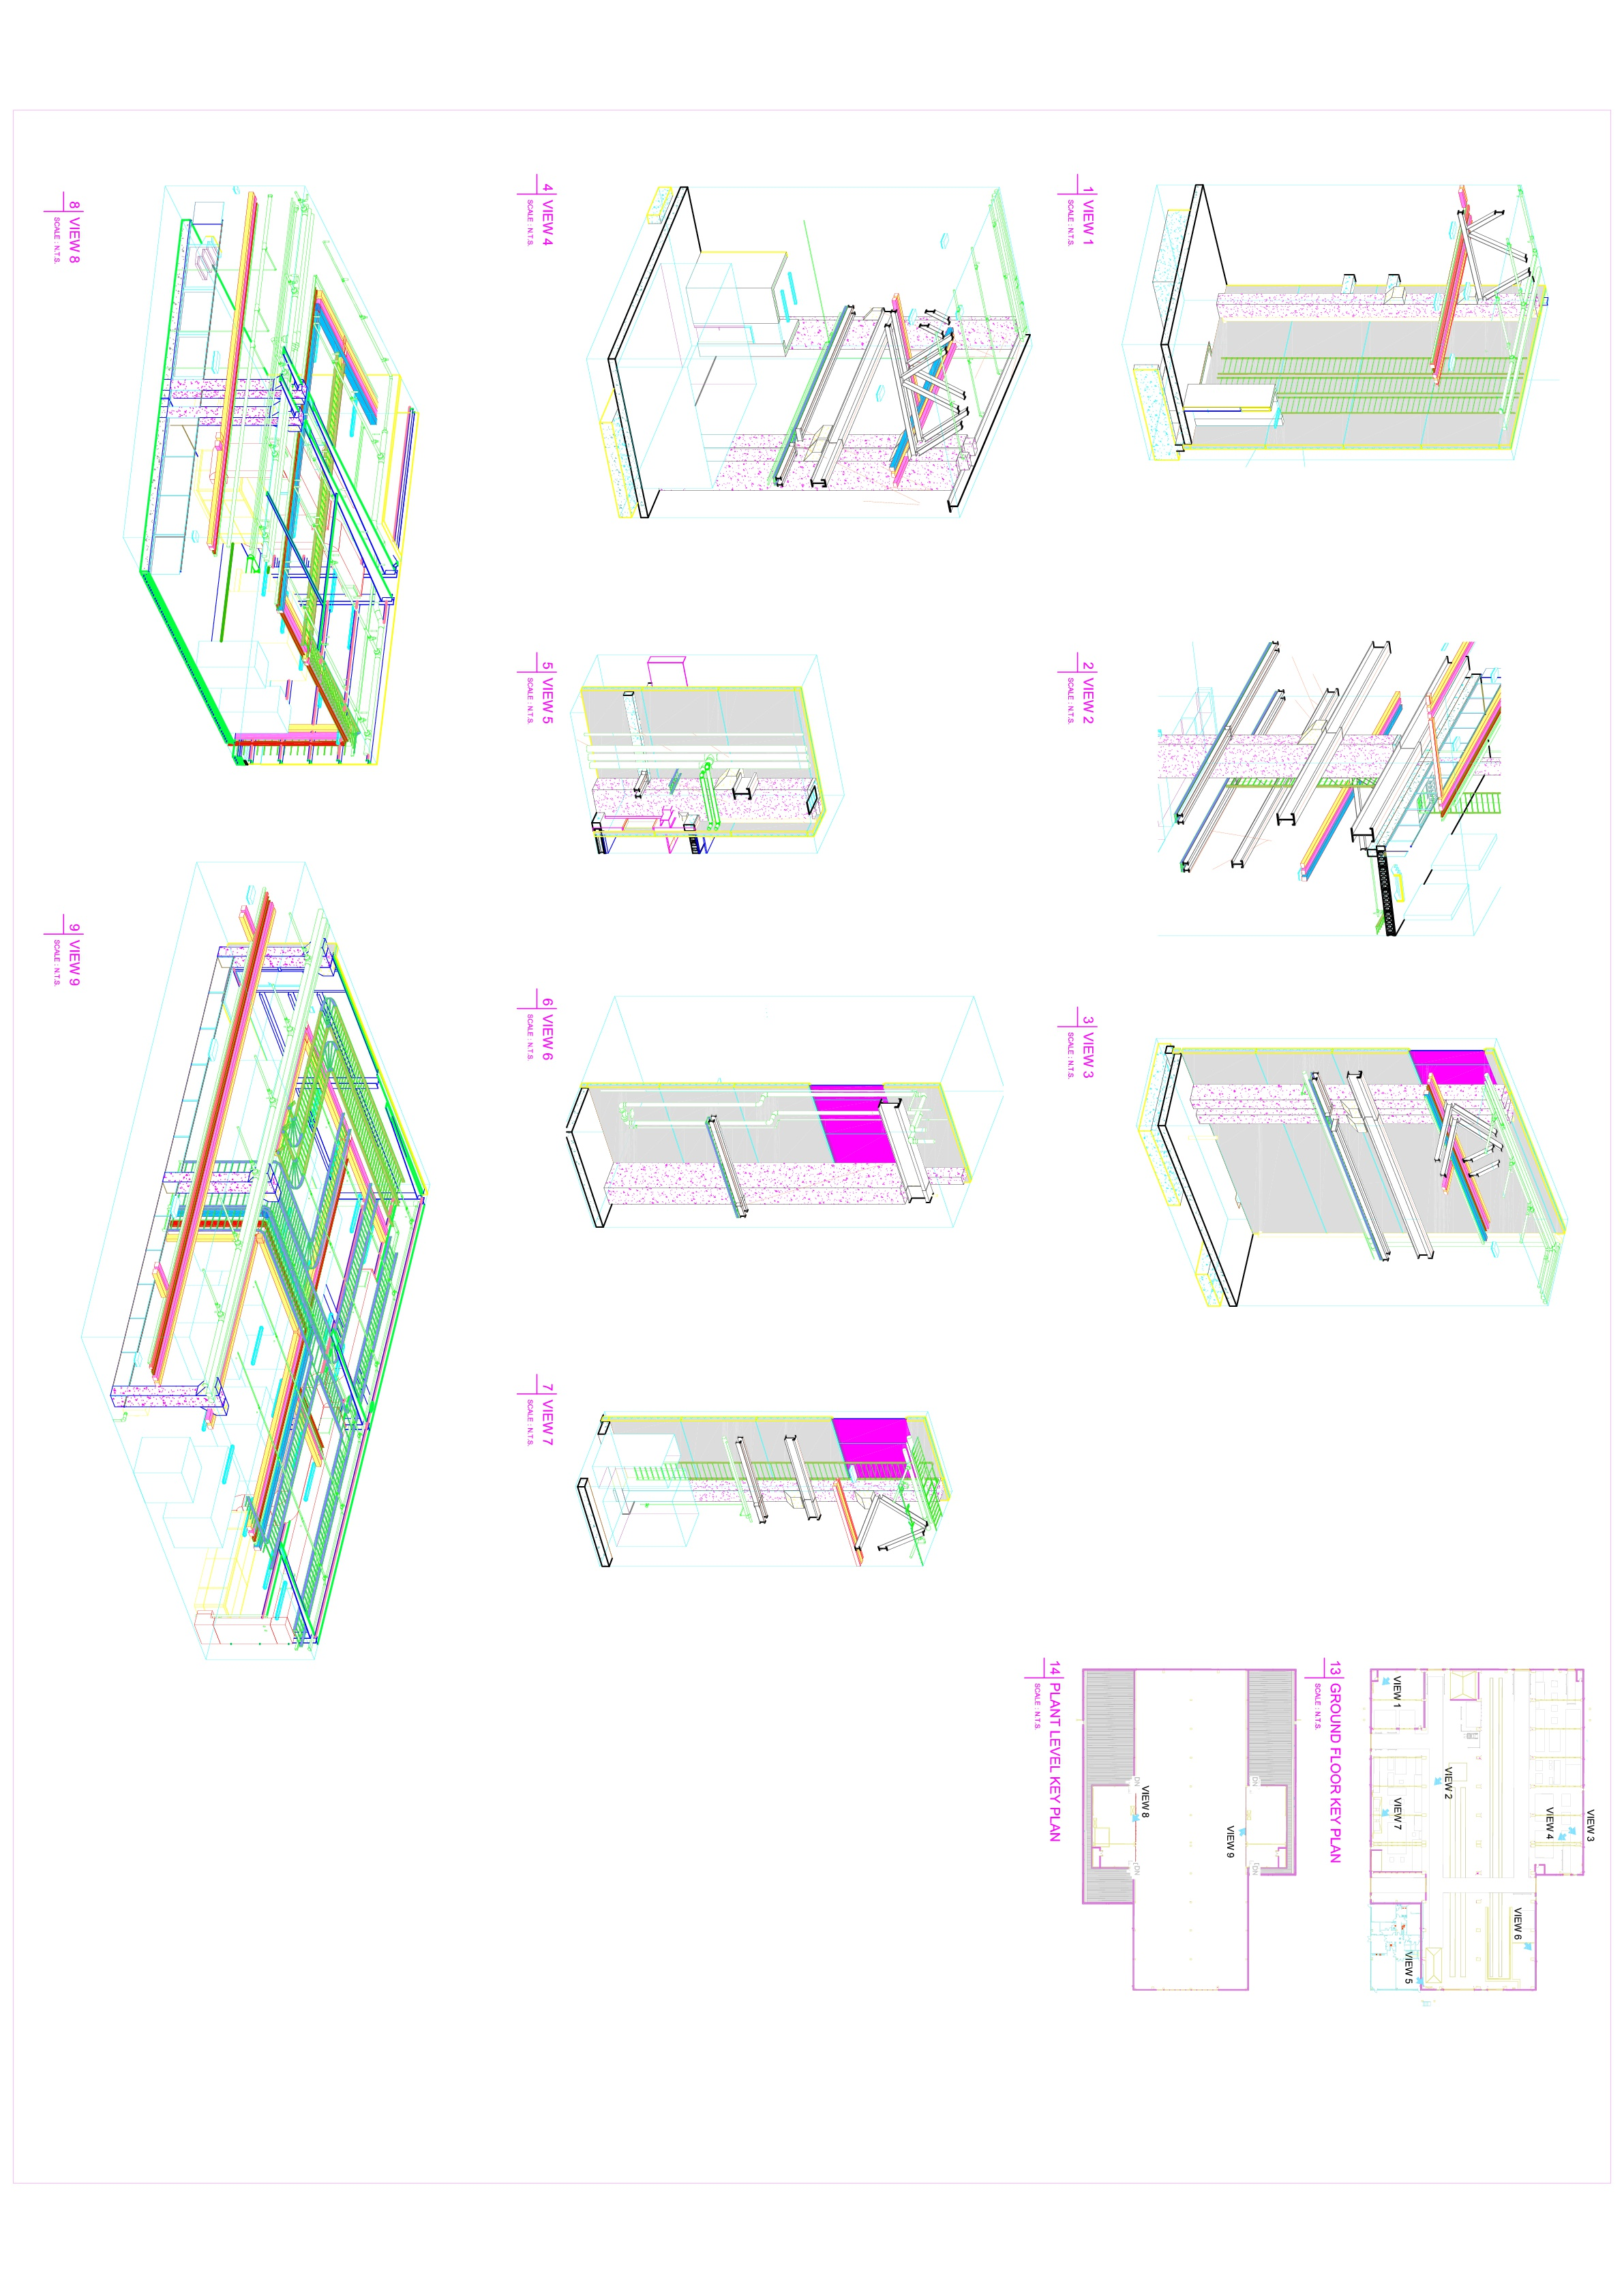 Cad Drafting And Designing Service In Indiaarchitecture Hvac Drawing Click Here For High Resolution